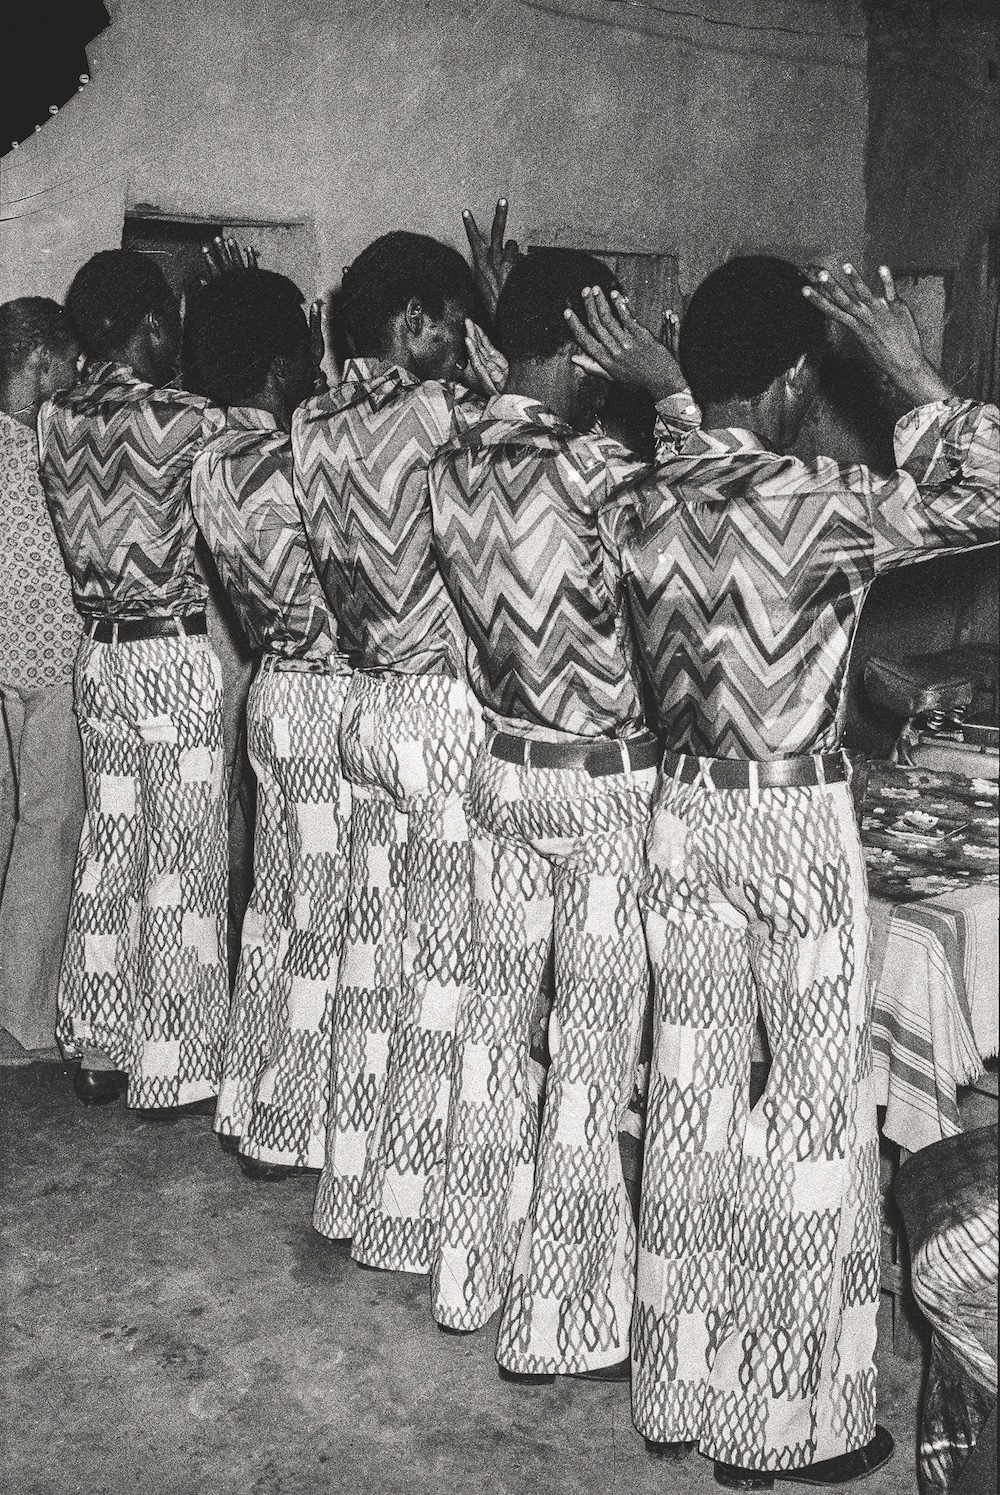 Les amis dans la même tenue, 1972. Collection Fondation Cartier pour l'art contemporain, Paris © Malick Sidibé Extract from Mali Twist (Éditions Xavier Barral, Fondation Cartier pour l'art contemporain, 2017)